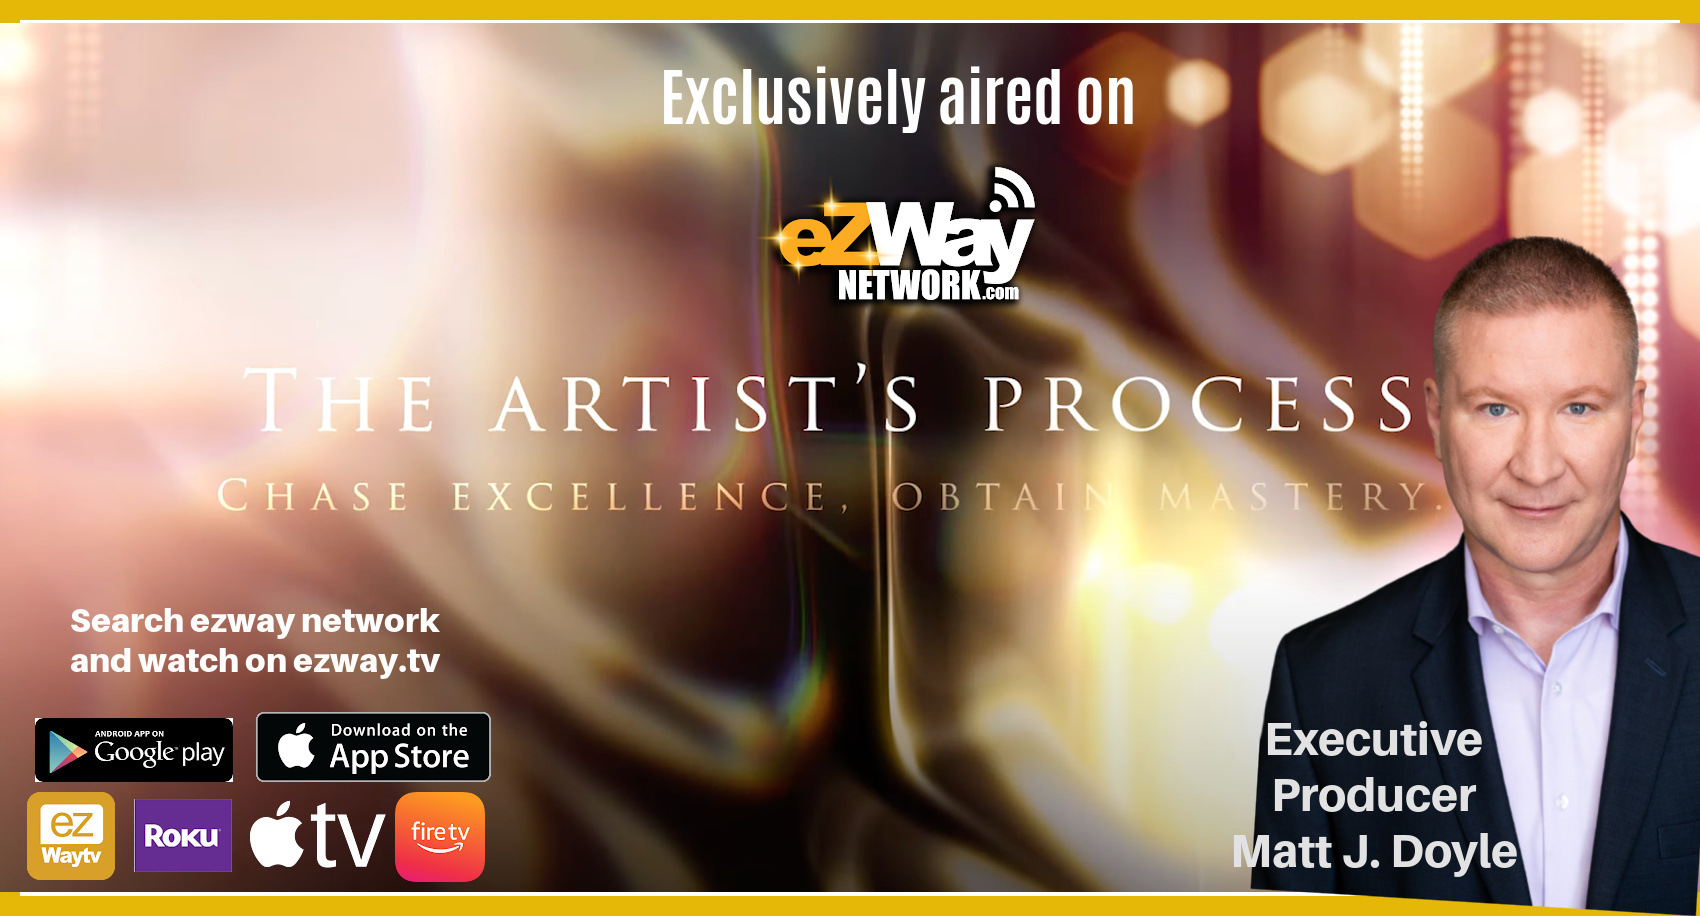 The Artists Process TAP 4.3. Top Free Web, TV Show, Series. Dramedy Acting Scene, Pop Music!